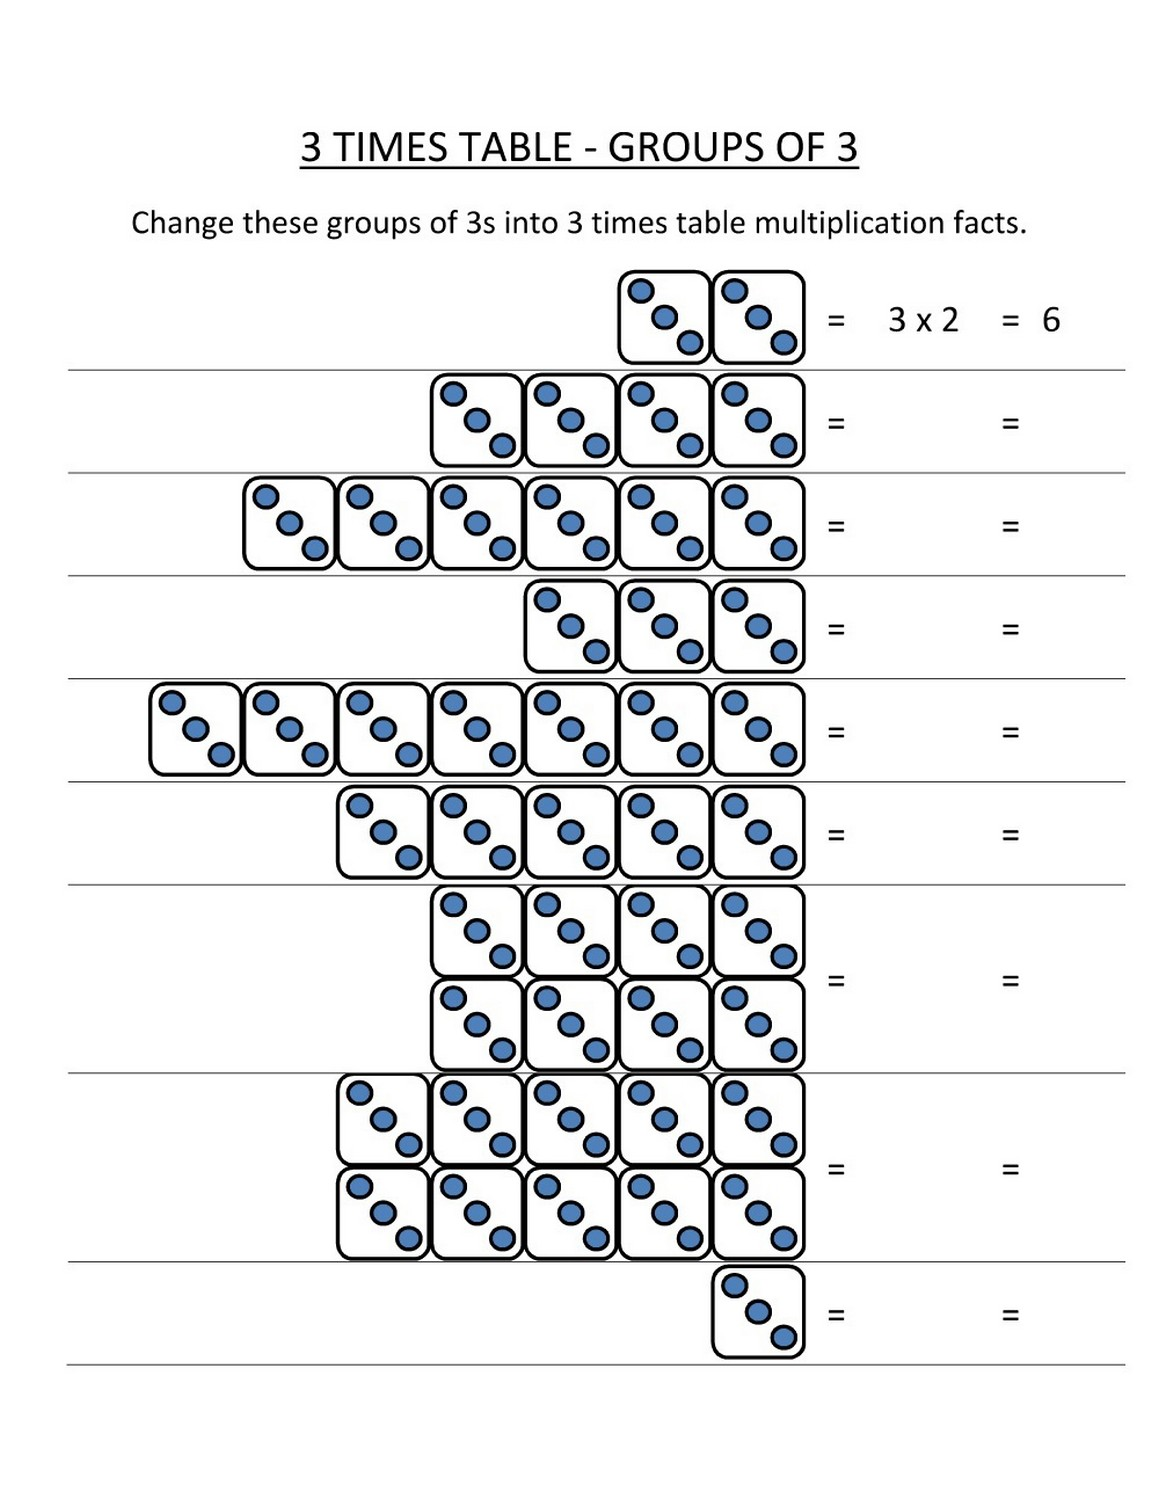 Times Table Exercise Basic For Kids Learning Printable